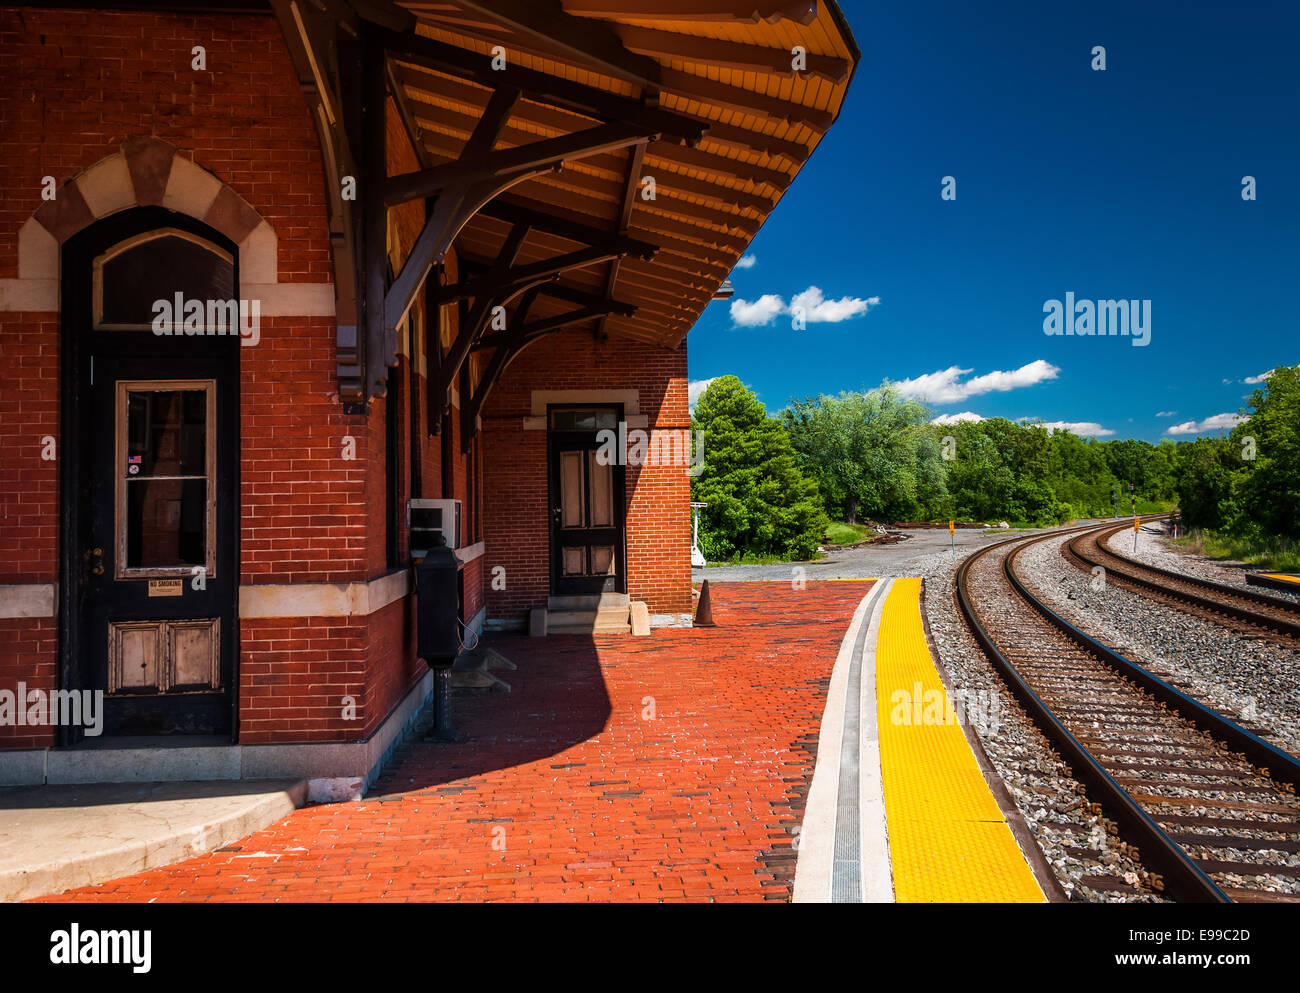 The historic railroad station along train tracks in Point of Rocks, Maryland. Stock Photo